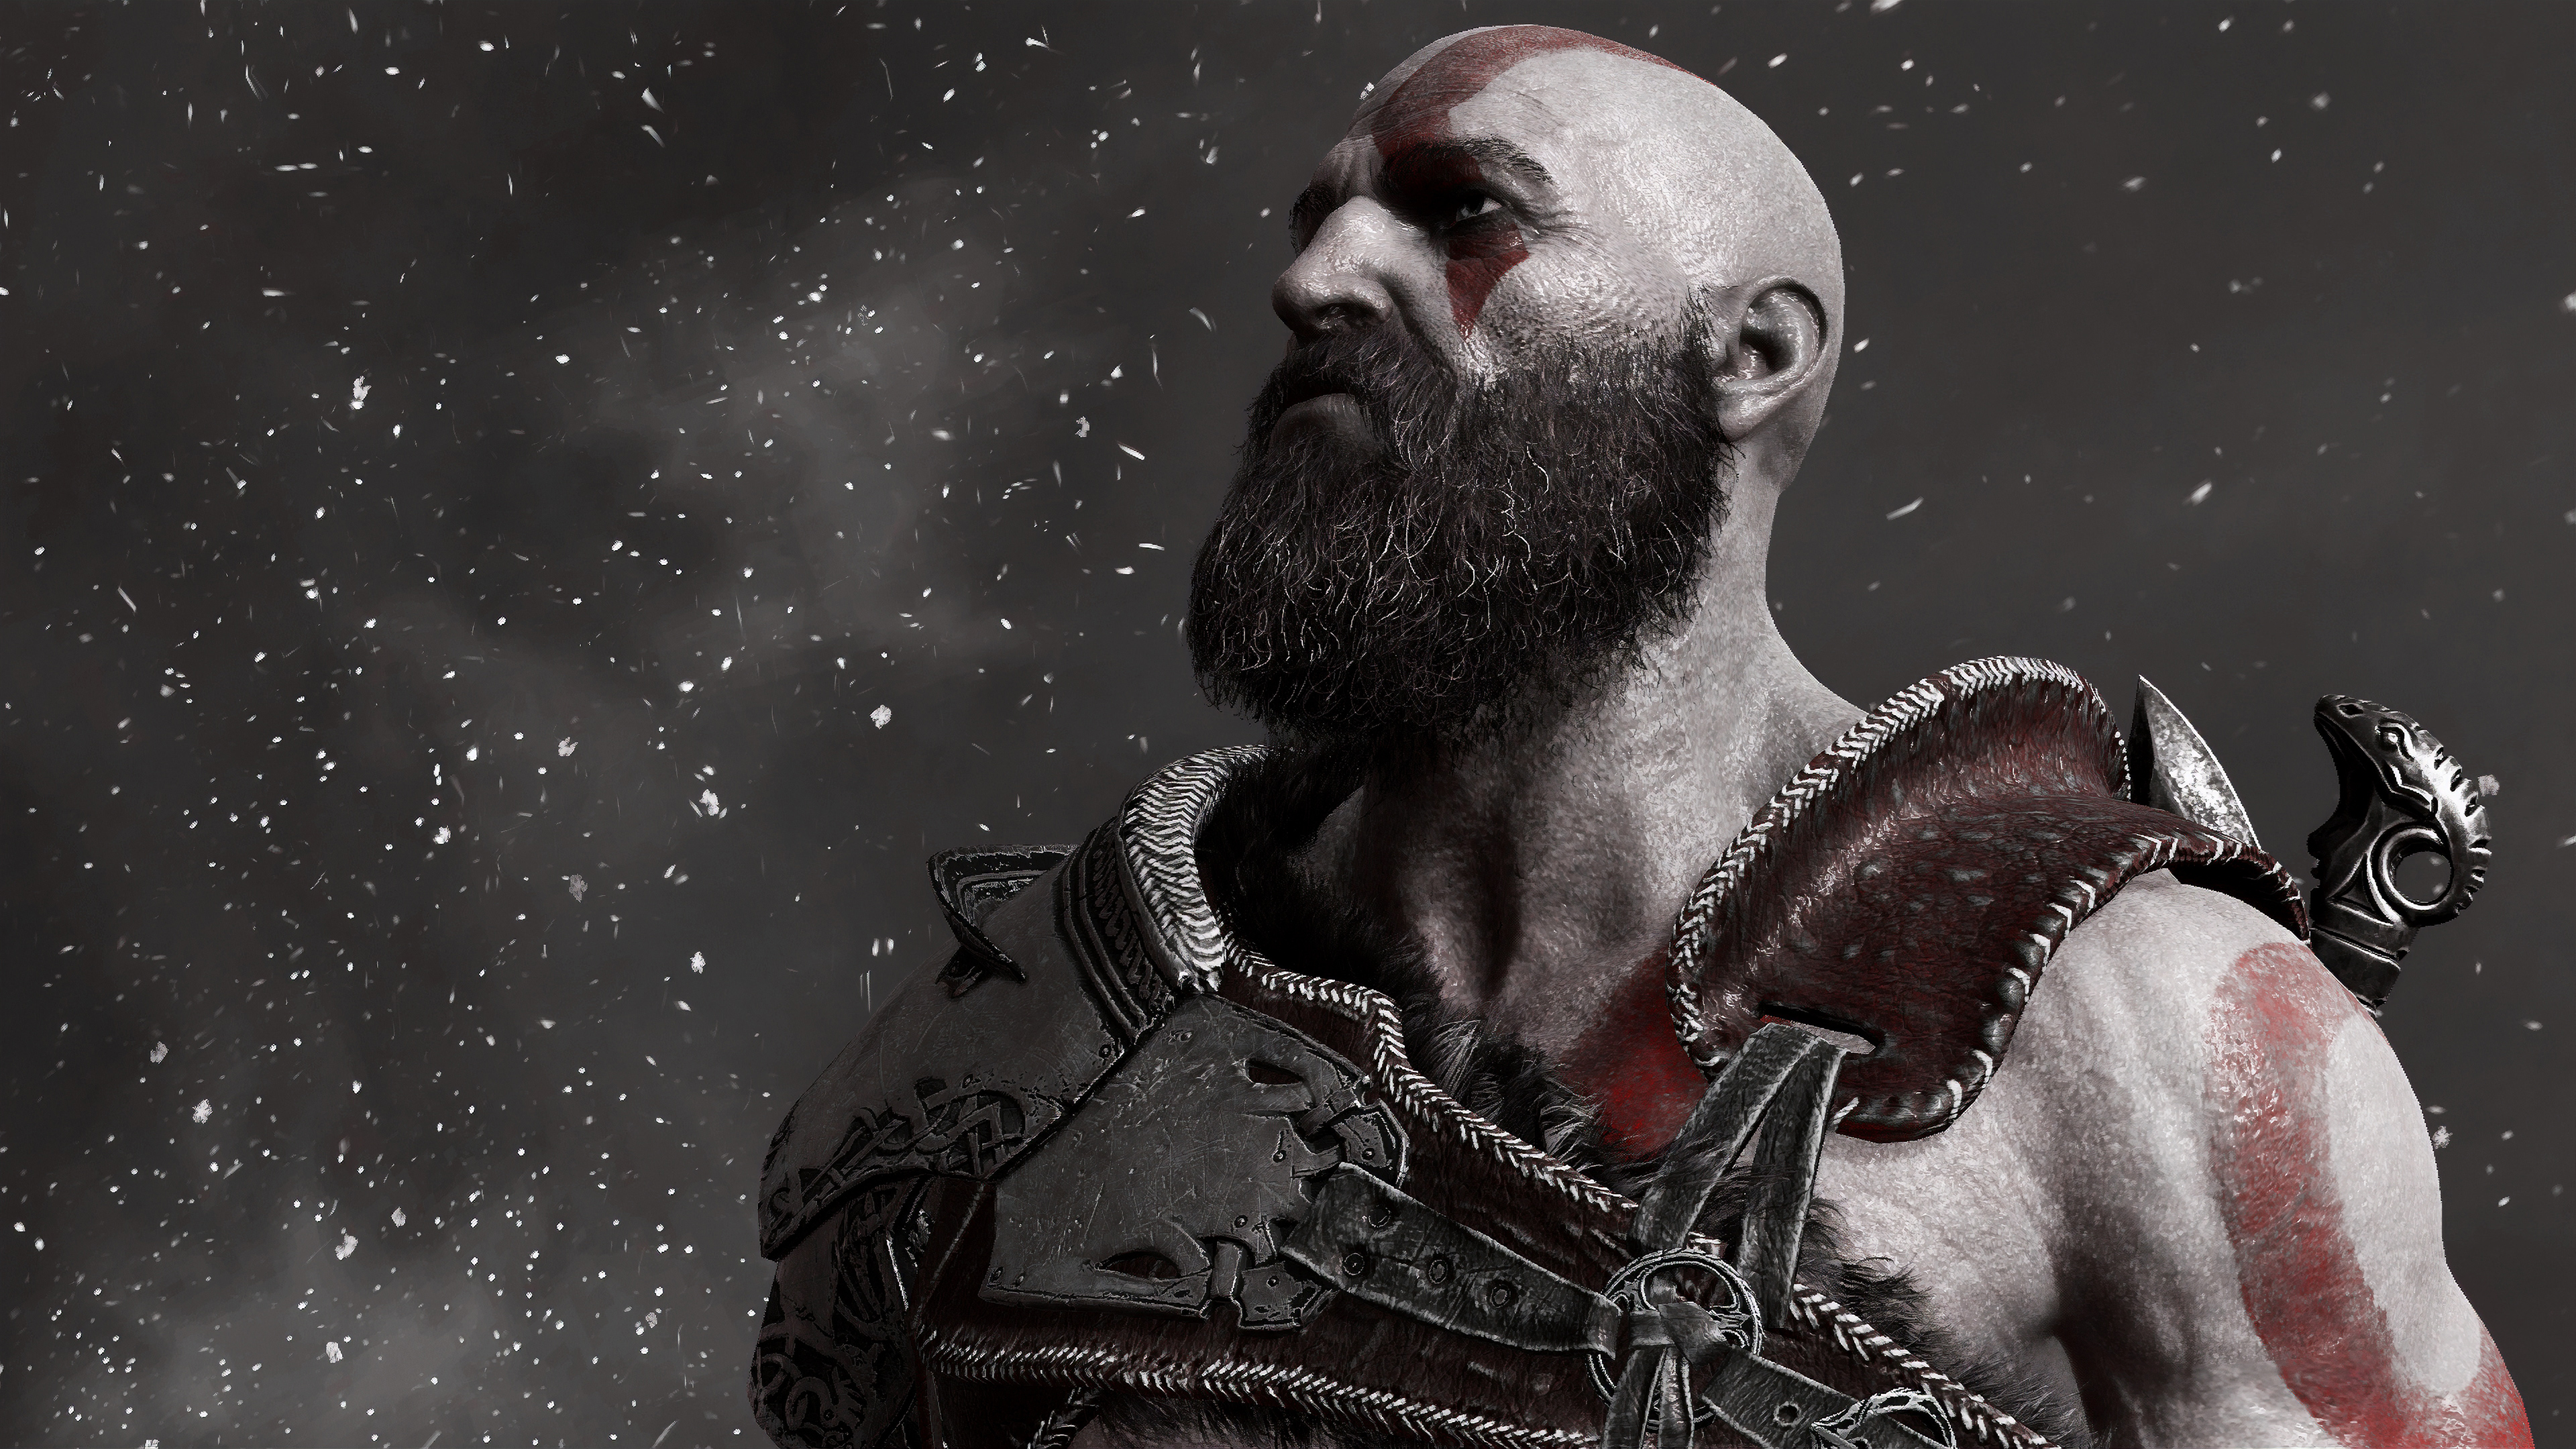 Wallpaper 4k God Of War 4 4k 2019 Games Wallpapers 4k